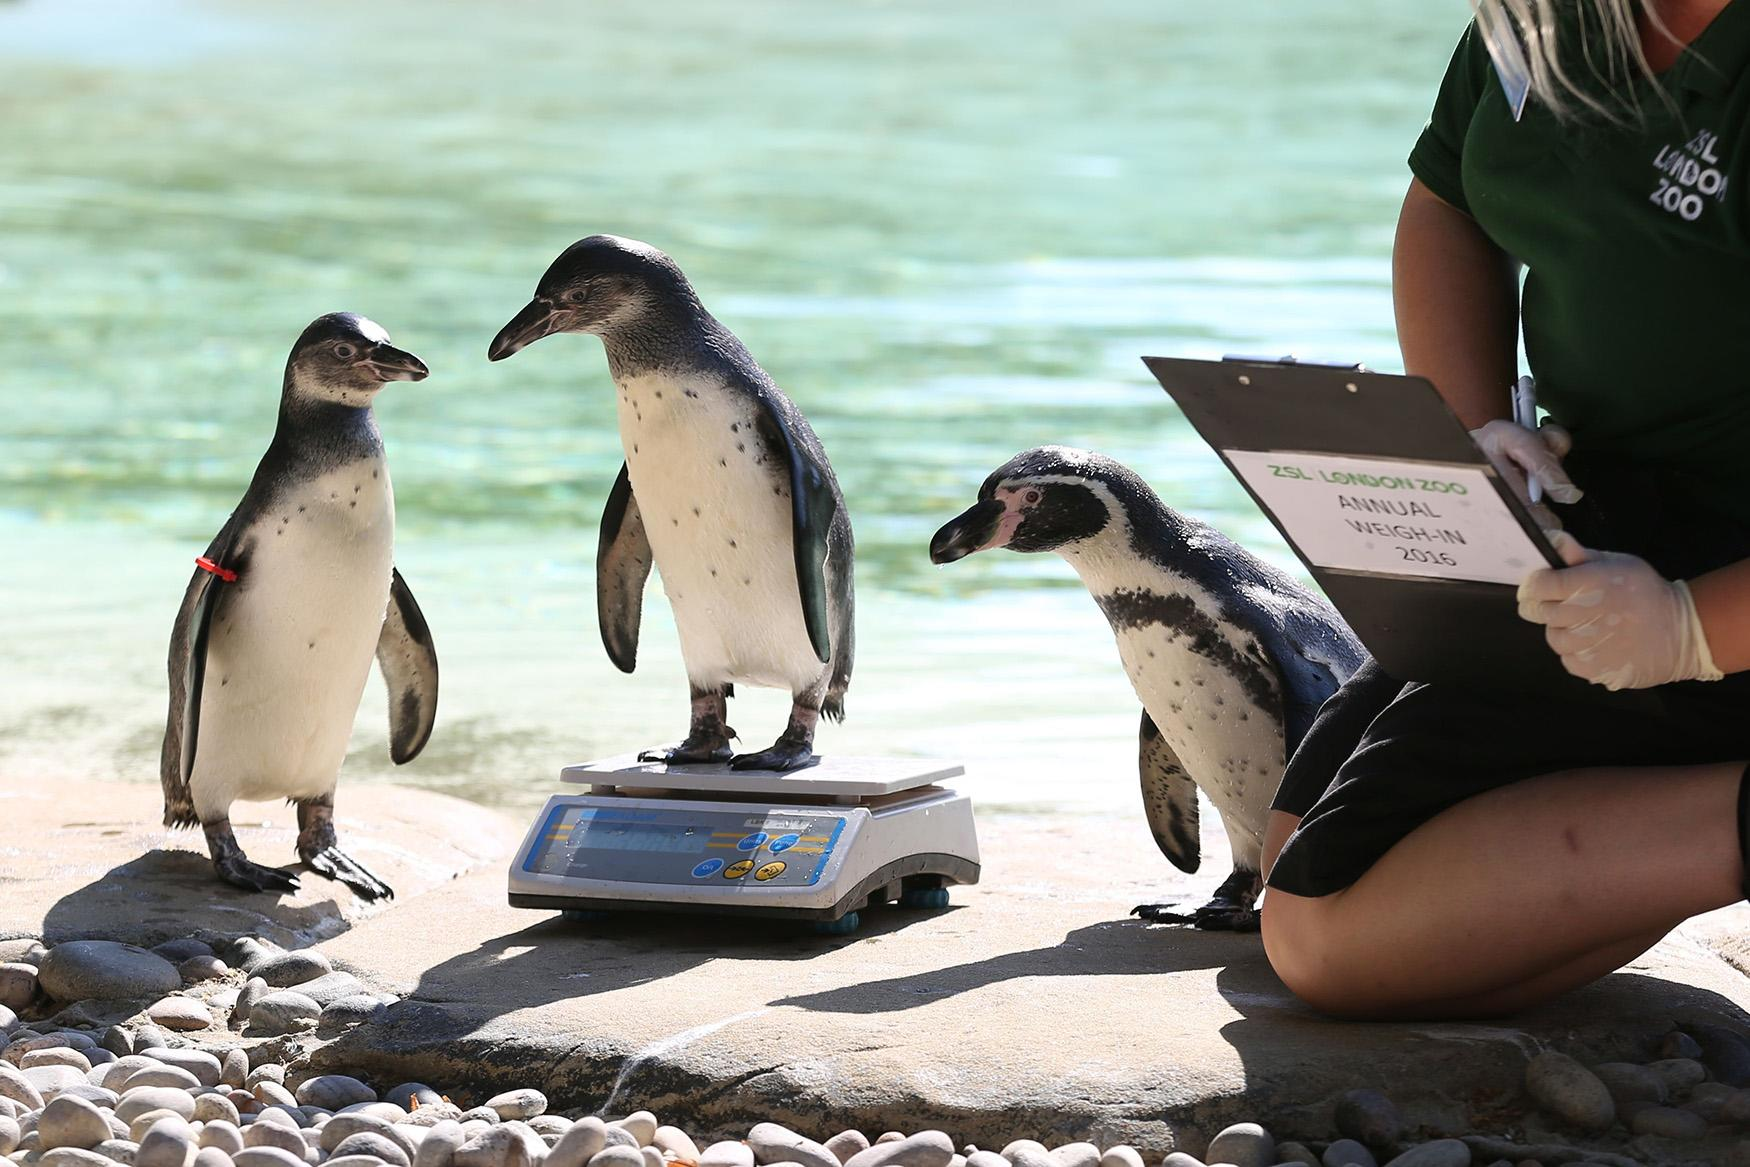 <p>Penguin chick Bracchino is weighed by a zookeeper, during the annual weigh-in at London Zoo, England, Wednesday, Aug. 24, 2016. Home to more than 700 different species, zookeepers regularly record the heights and weights of all the creatures at ZSL London Zoo as a key way of monitoring the residents' overall wellbeing. This important information is shared with zoos around the world using ZIMS - the Zoological Information Management System - to help zoologists compare details on thousands of endangered species. (Photo: Laura Dale/AP) </p>